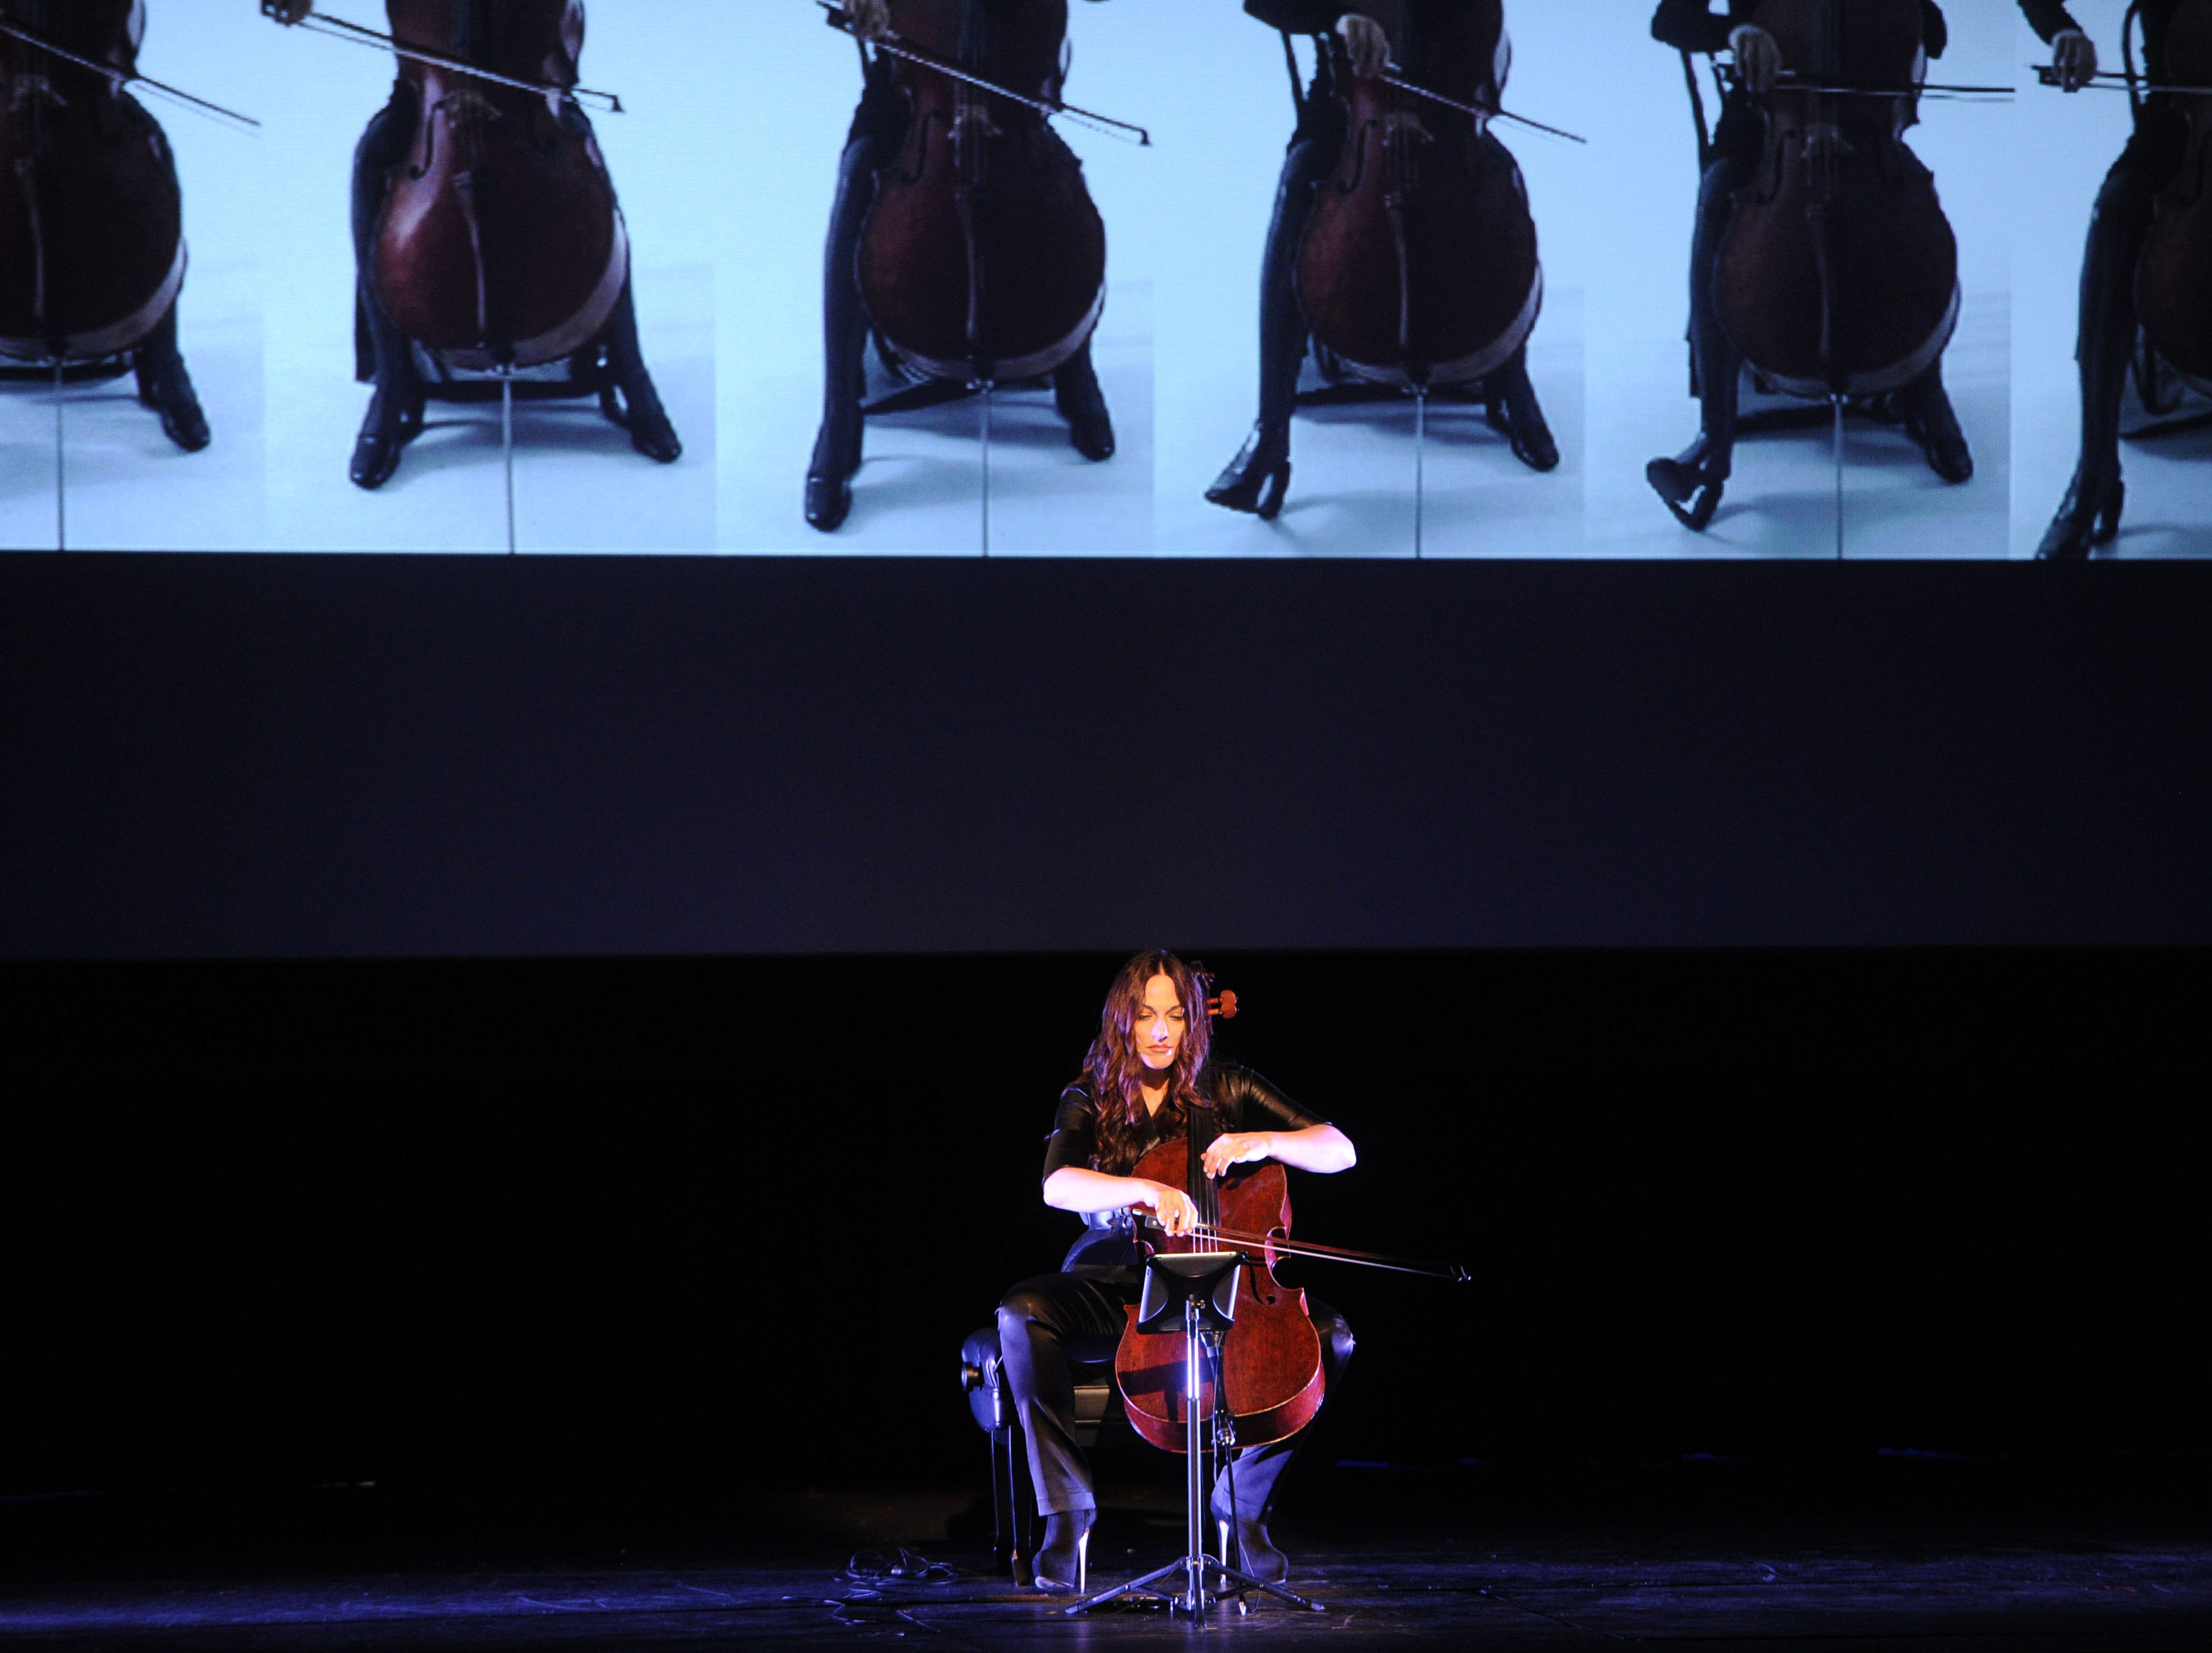 Maya Beiser performs at The Bijou Theatre during the Big Ears Festival in Knoxville on Saturday, April 2, 2016.